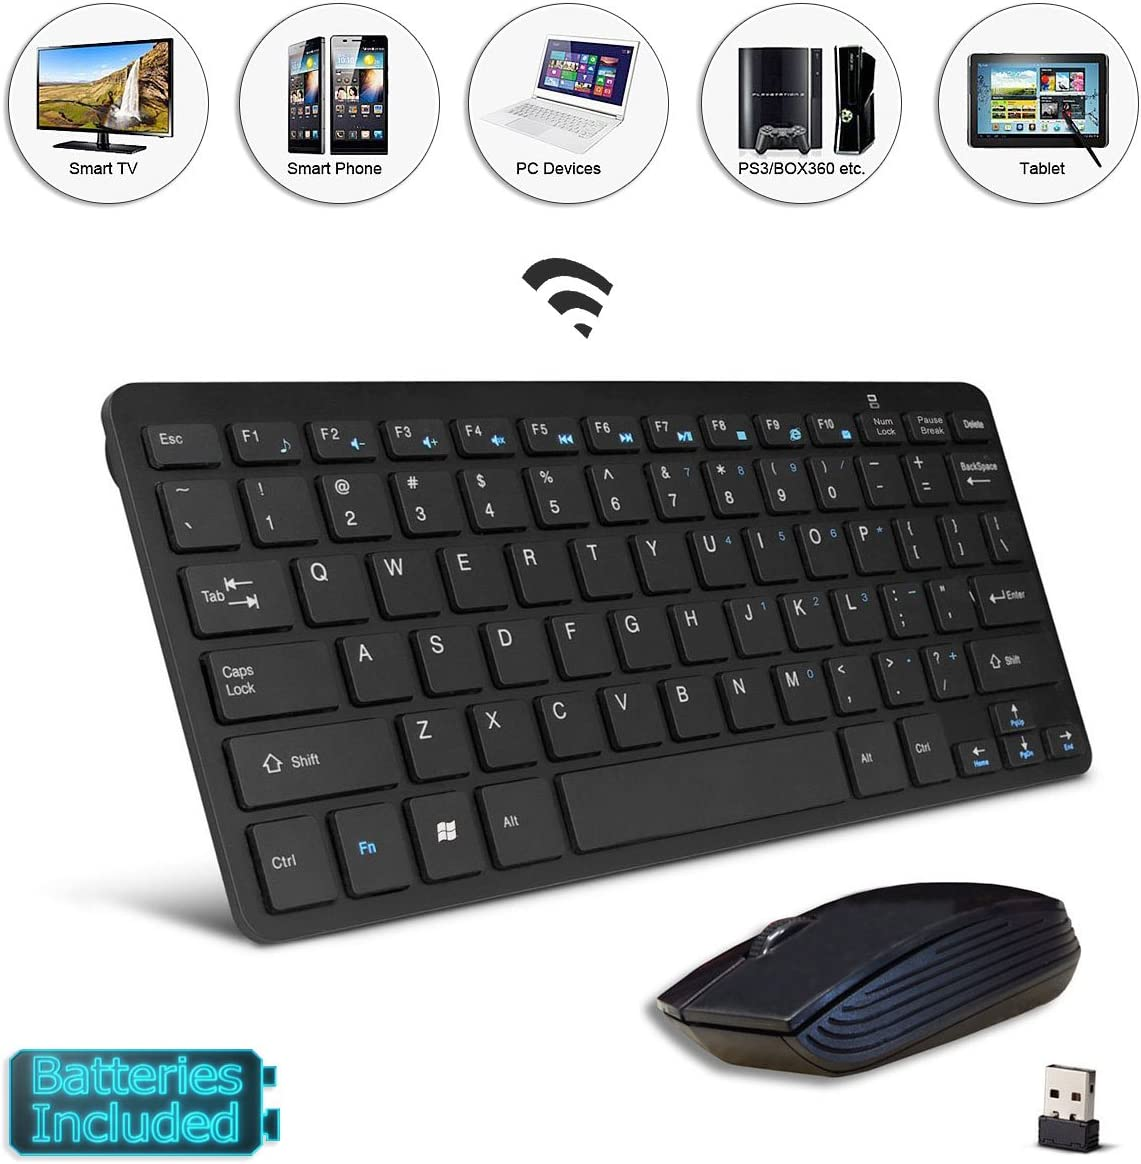 Black Wireless Mini Ultra Slim Keyboard and Mouse For Easy Smart TV Contol for Hisense H49N6600 49 Smart TV